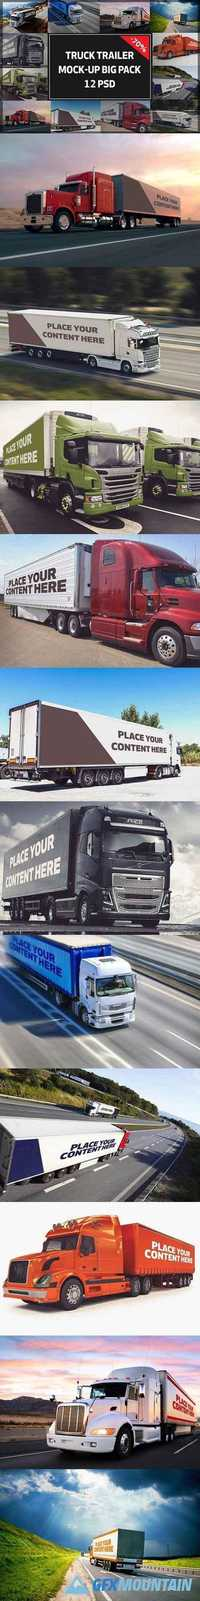 Truck Trailer Mock-up Bigpack#2 1350613